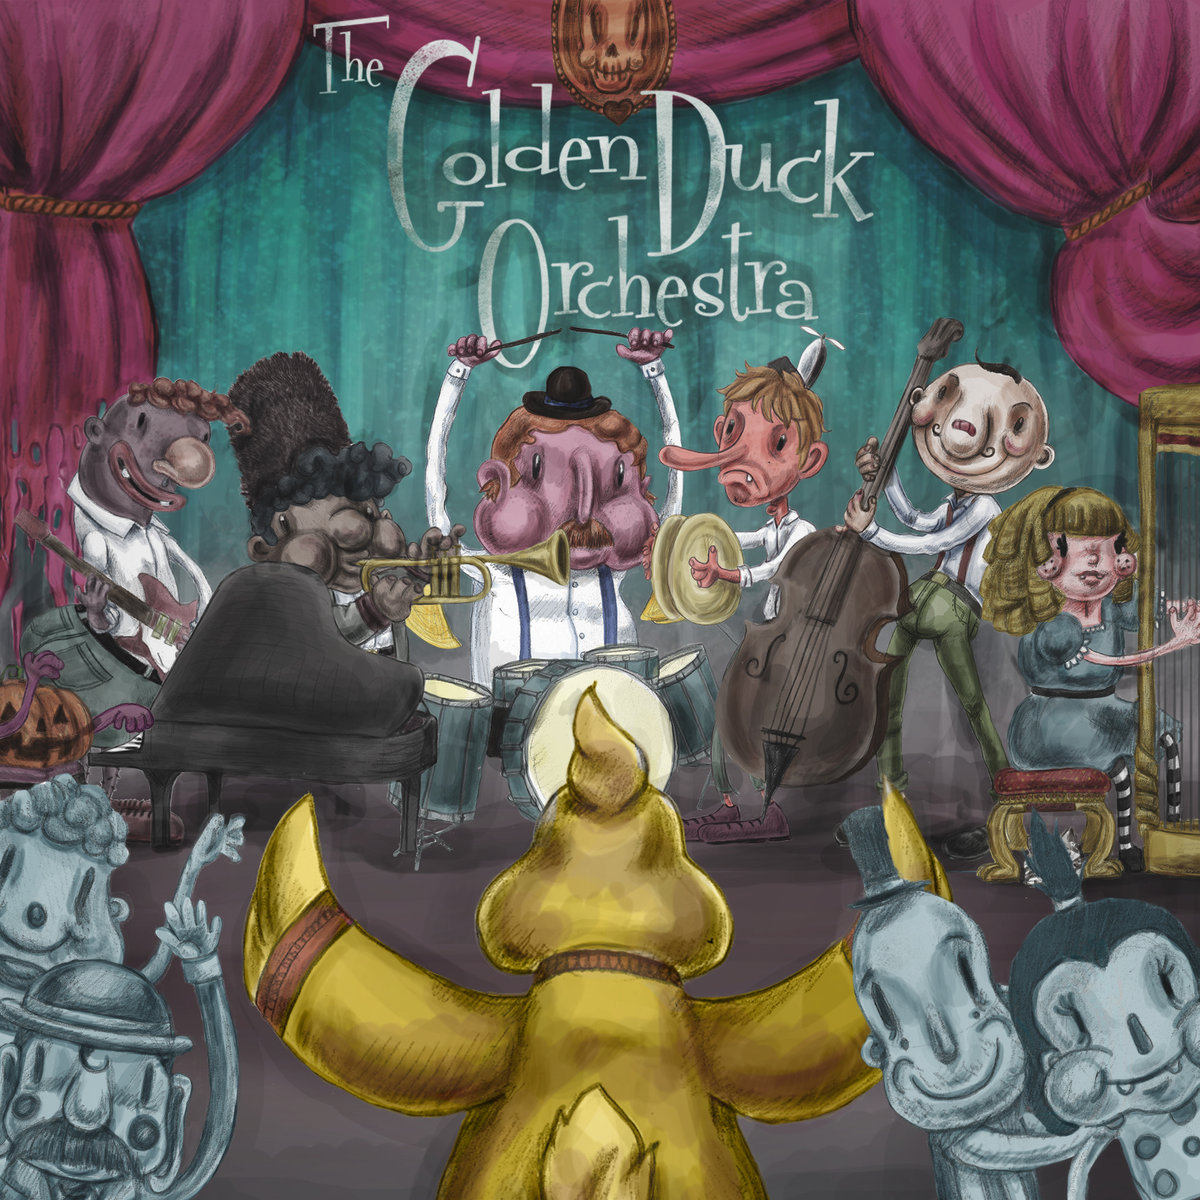 Golden Duck Orchestra - On Sale @ 'Golden Duck Orchestra' album (alternative, brazilian music)